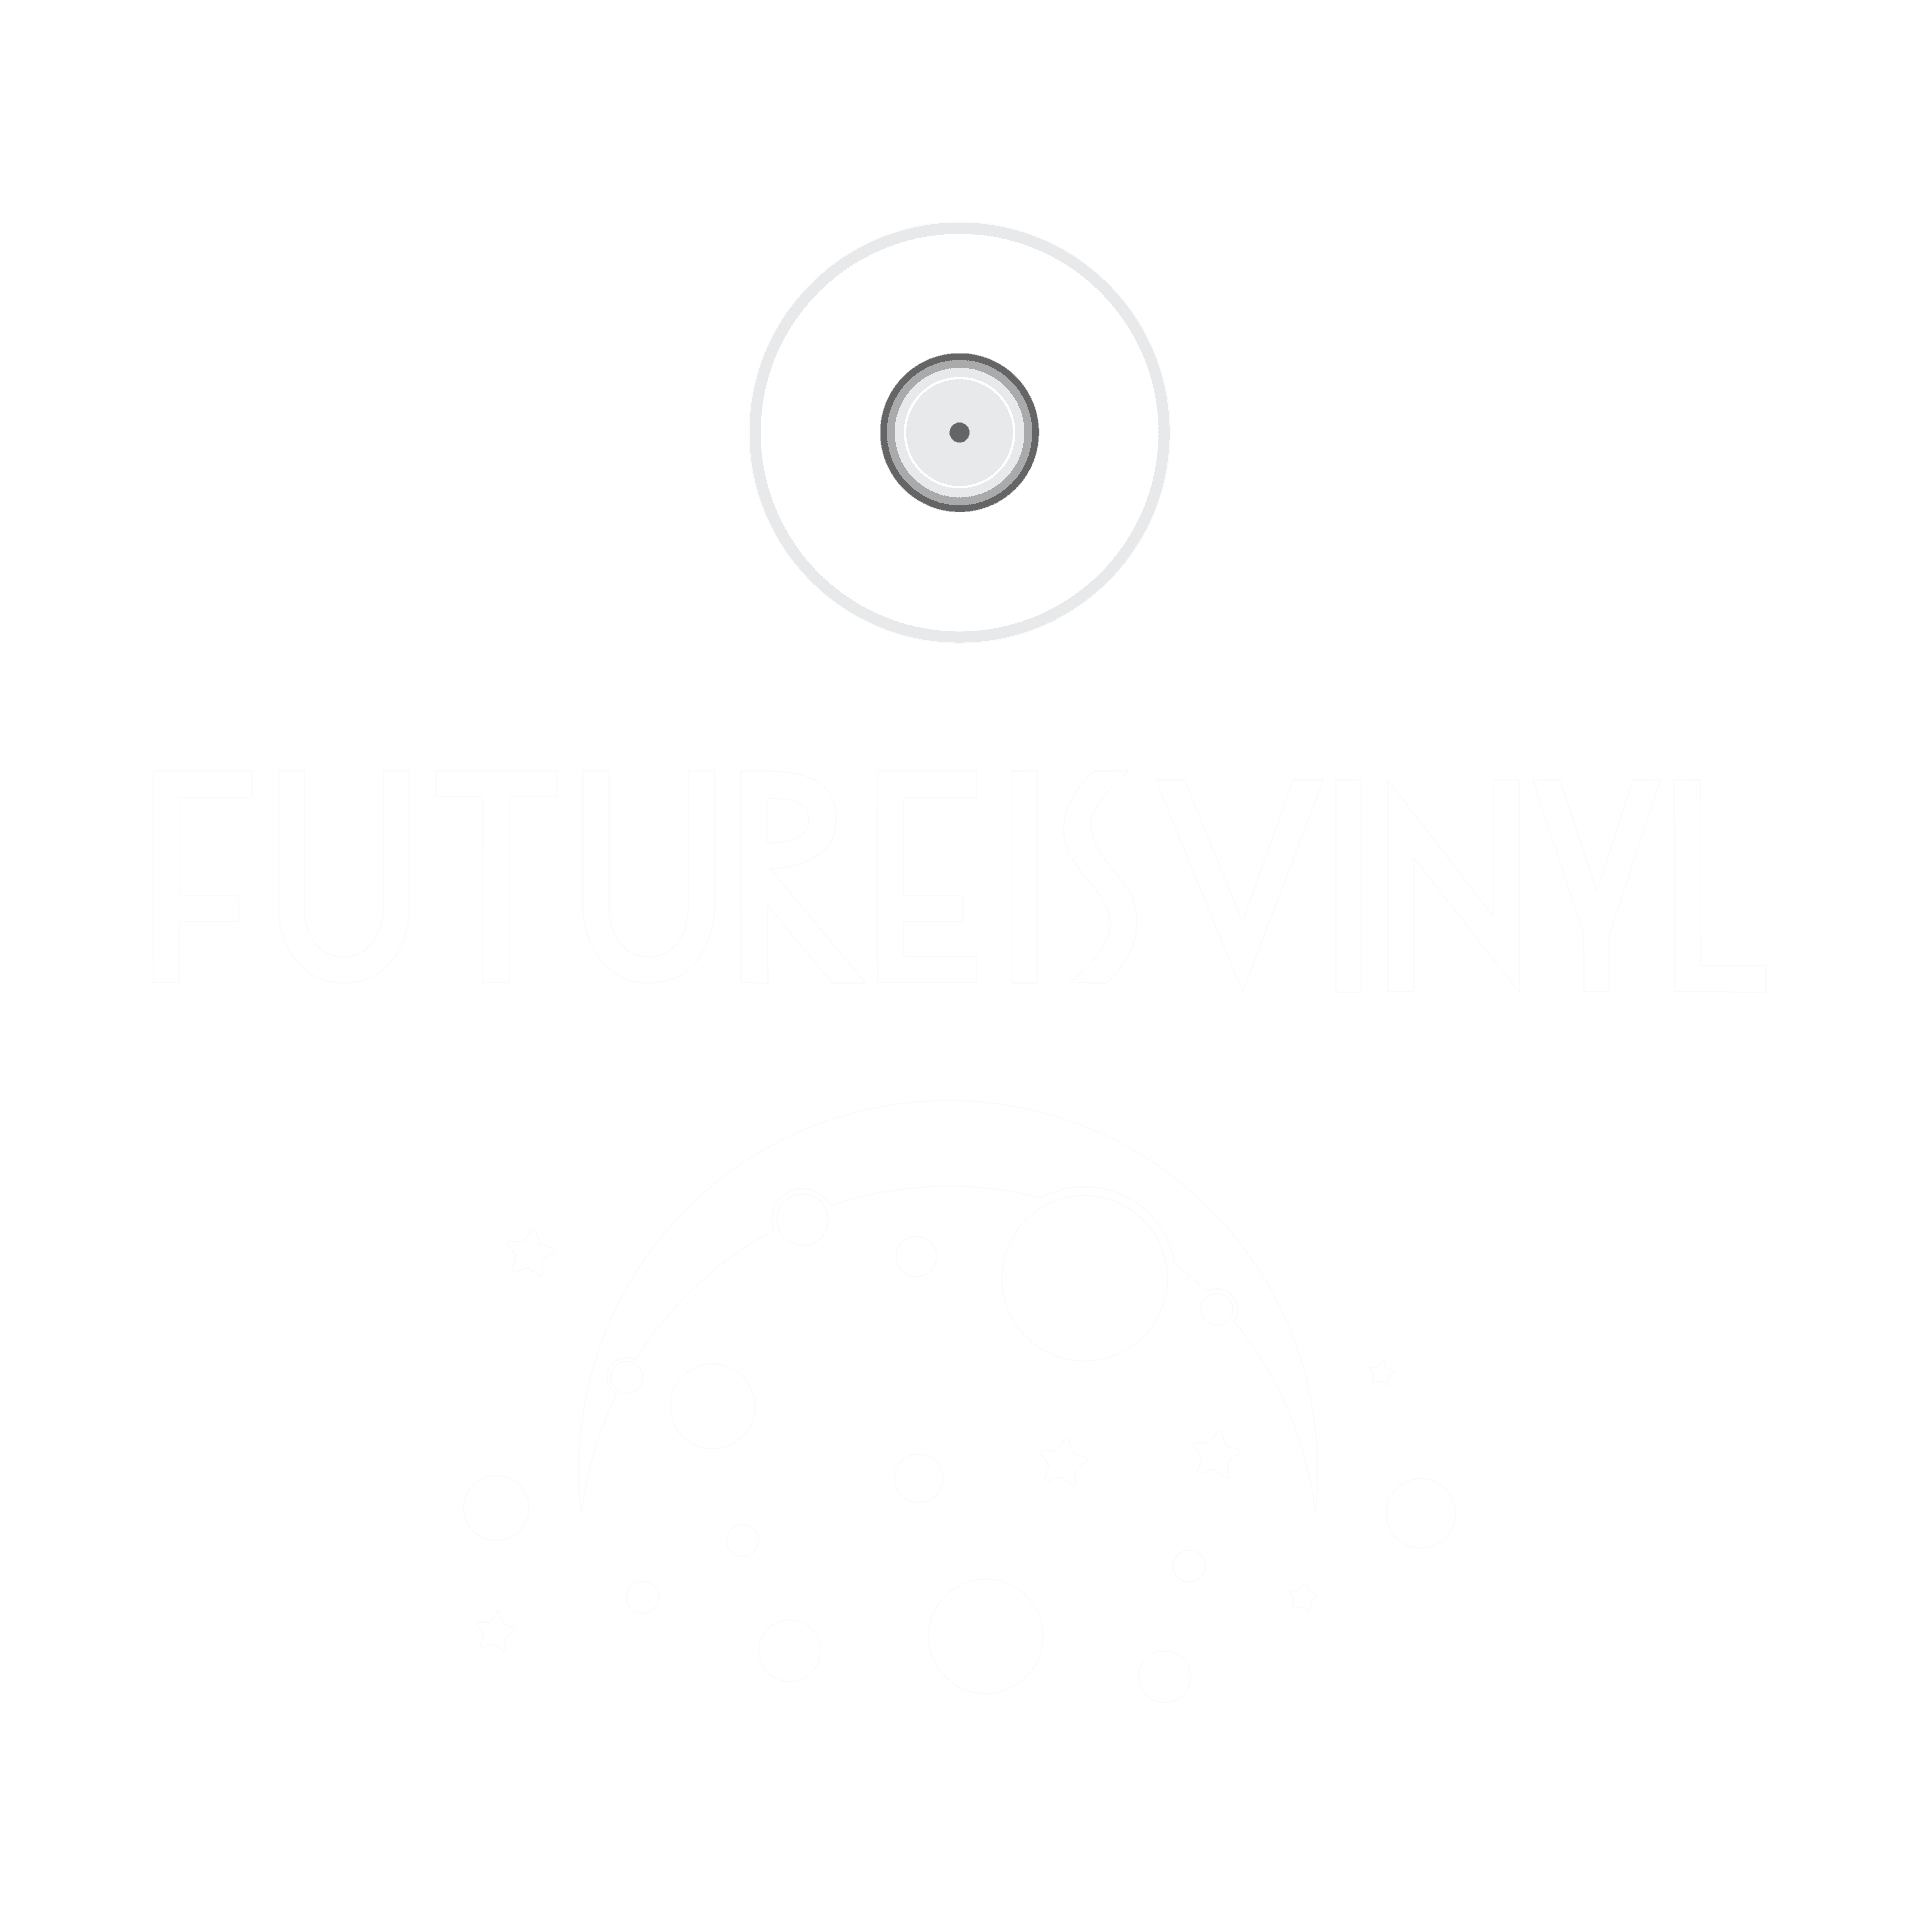 future is vinyl logo